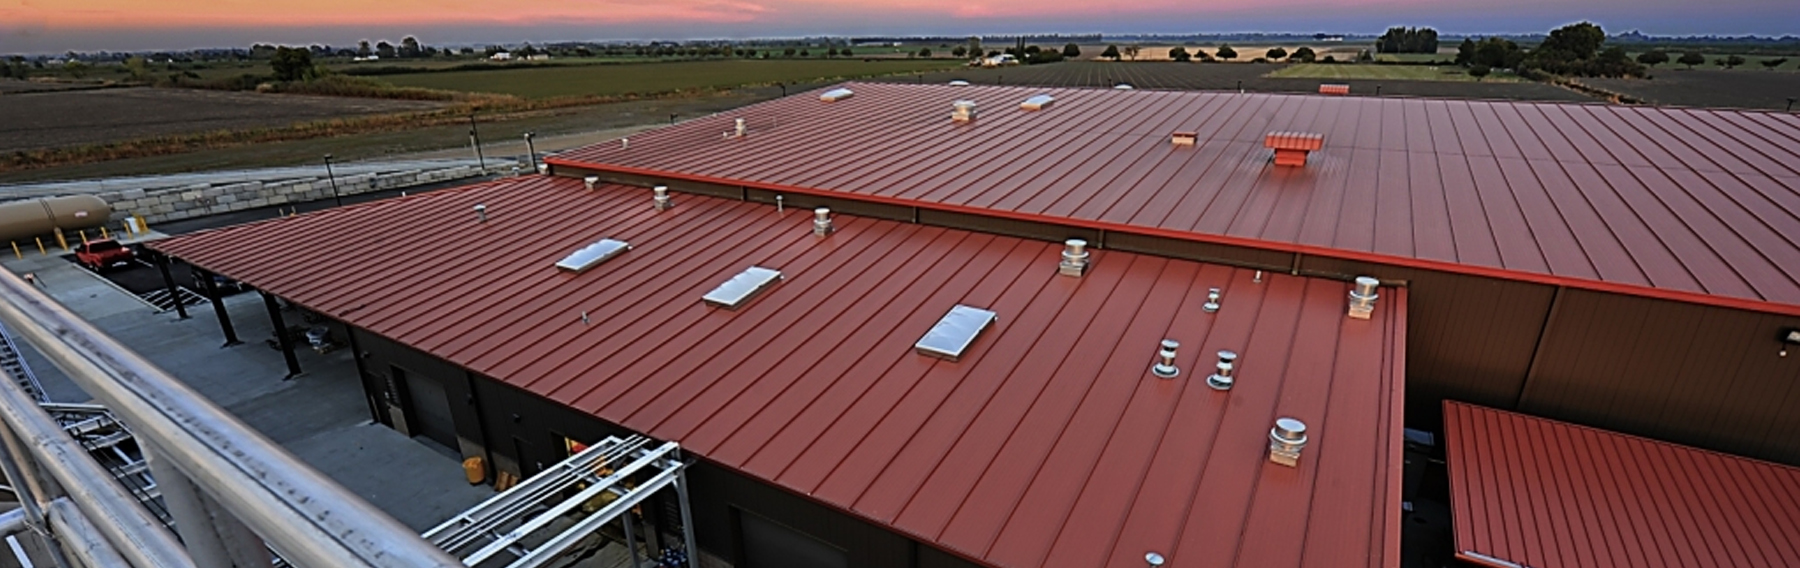 Chicago Commercial Roofing Amp Flat Roof Repair Commercial